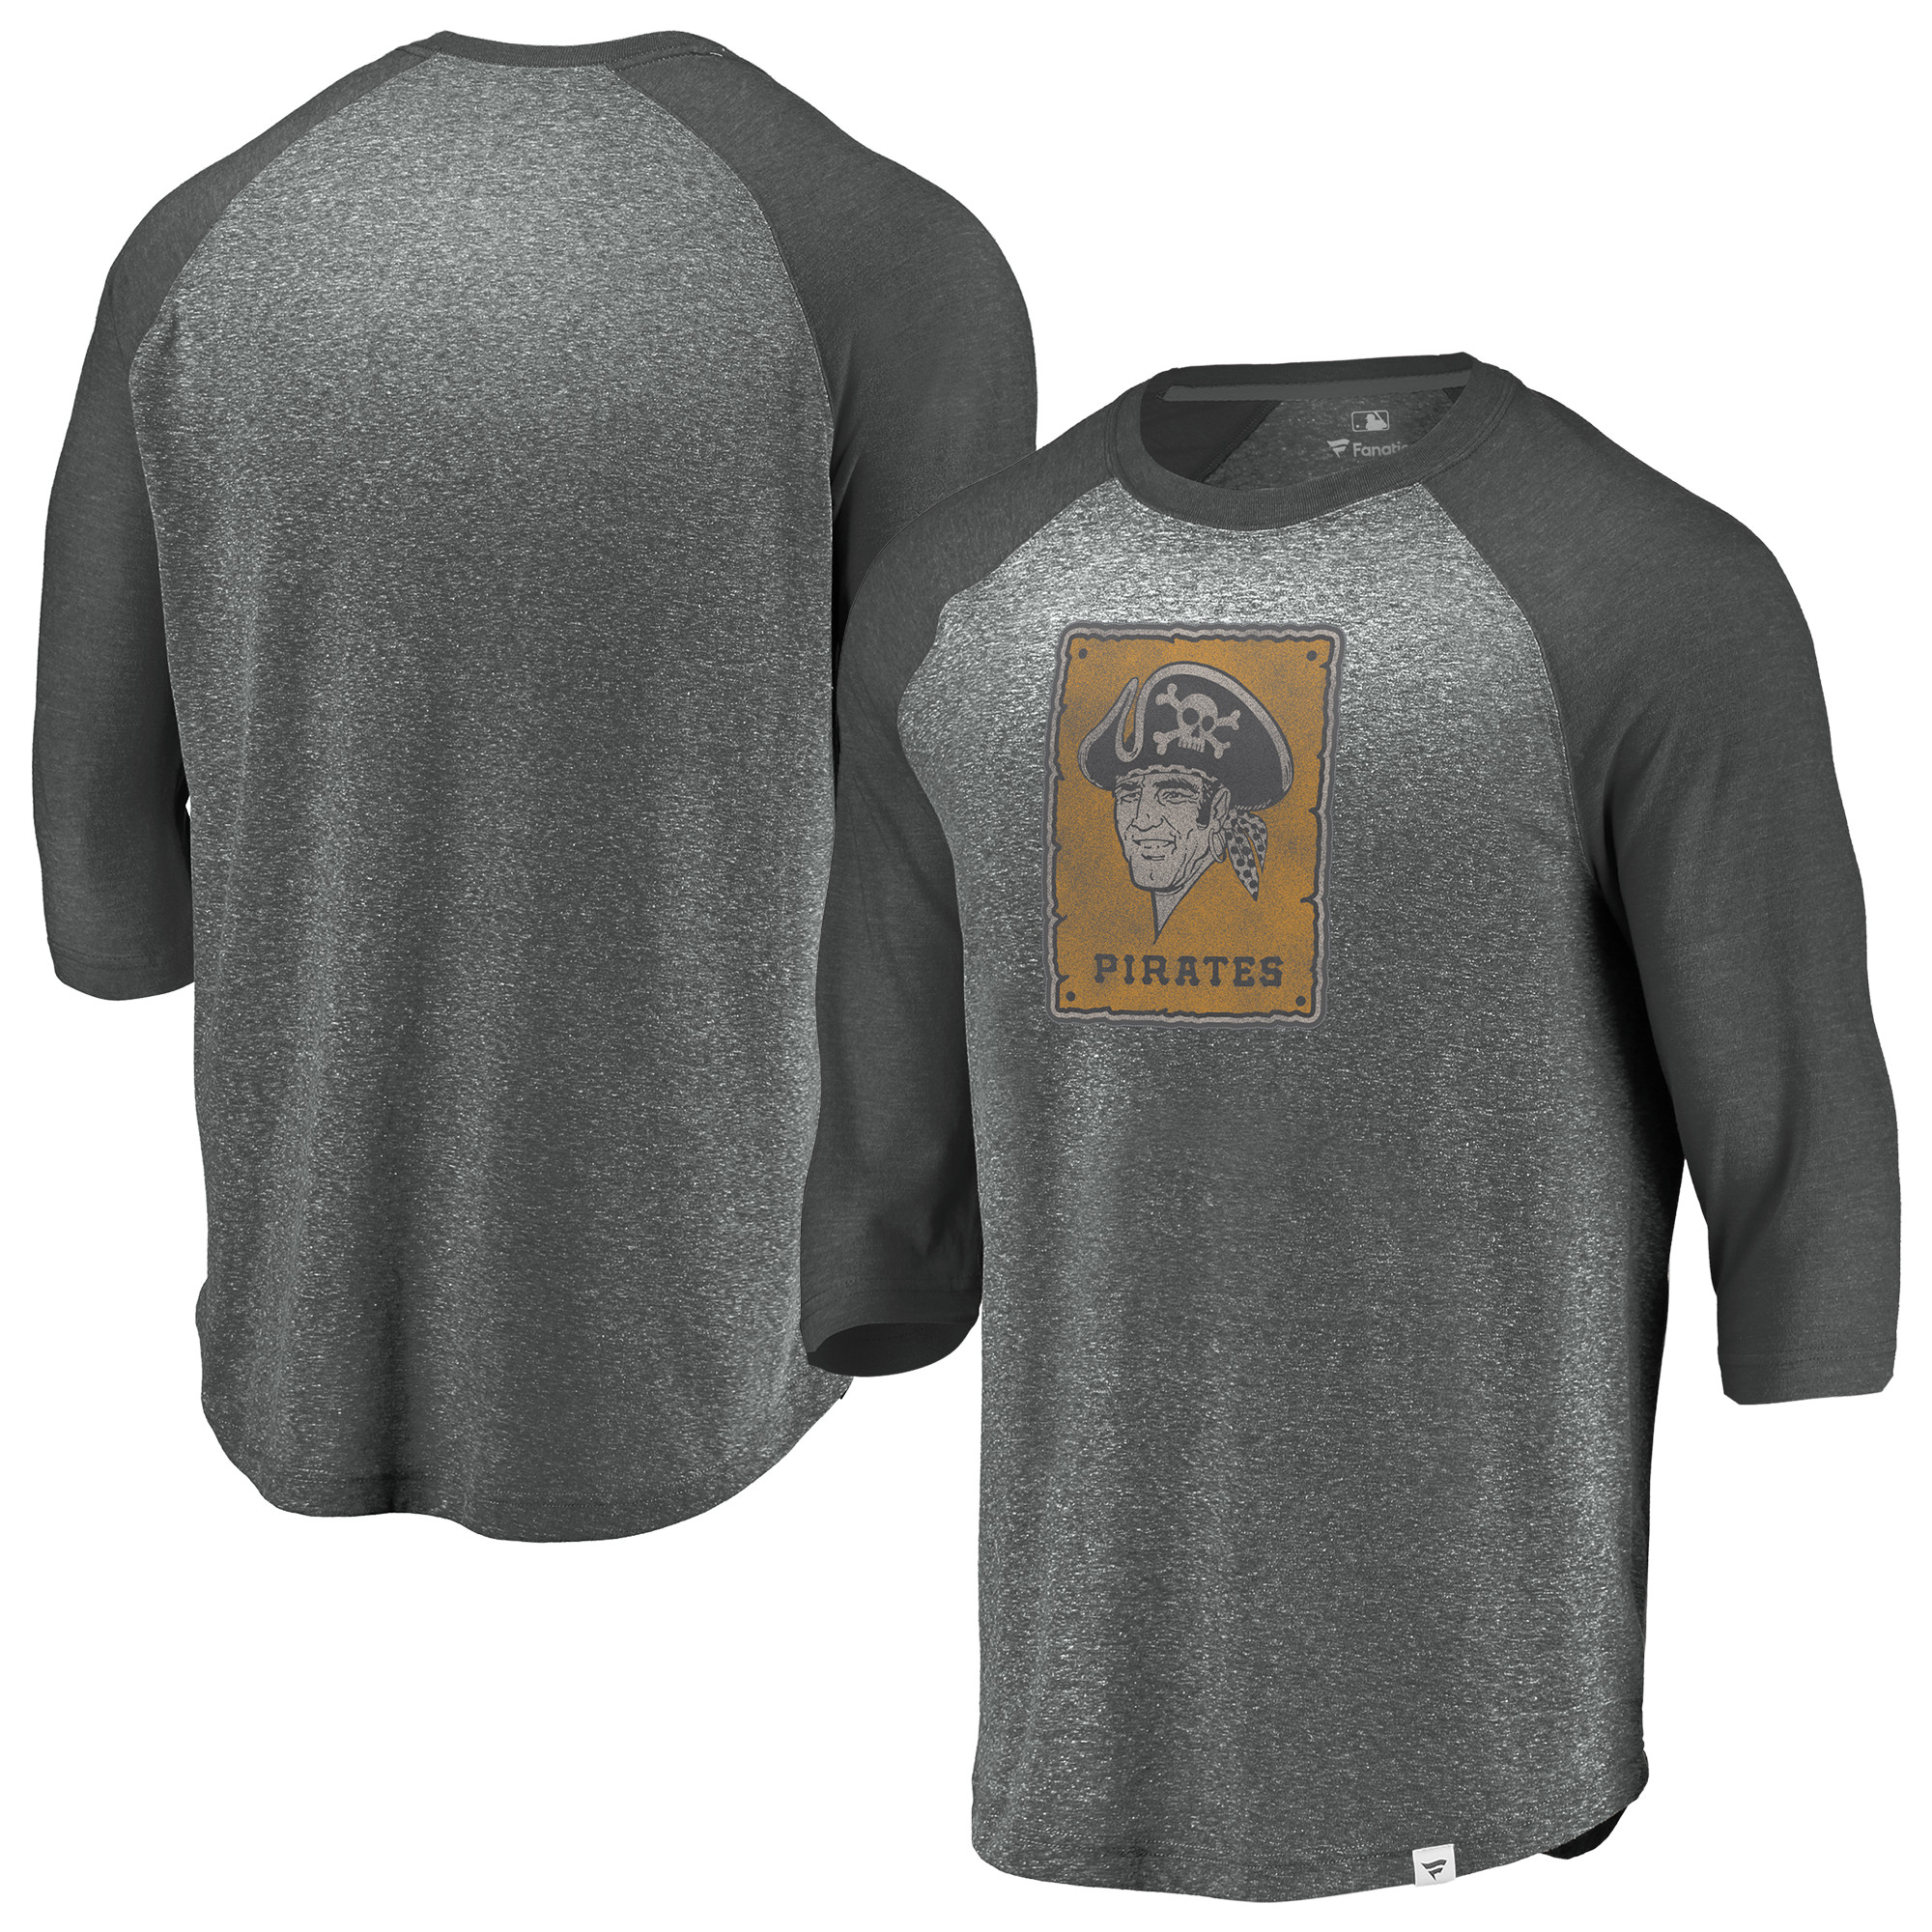 Pittsburgh Pirates Fanatics Branded Cooperstown Collection Massive Devotees Tri-Blend Raglan 3/4-Sleeve T-Shirt - Heathered Gray/Charcoal